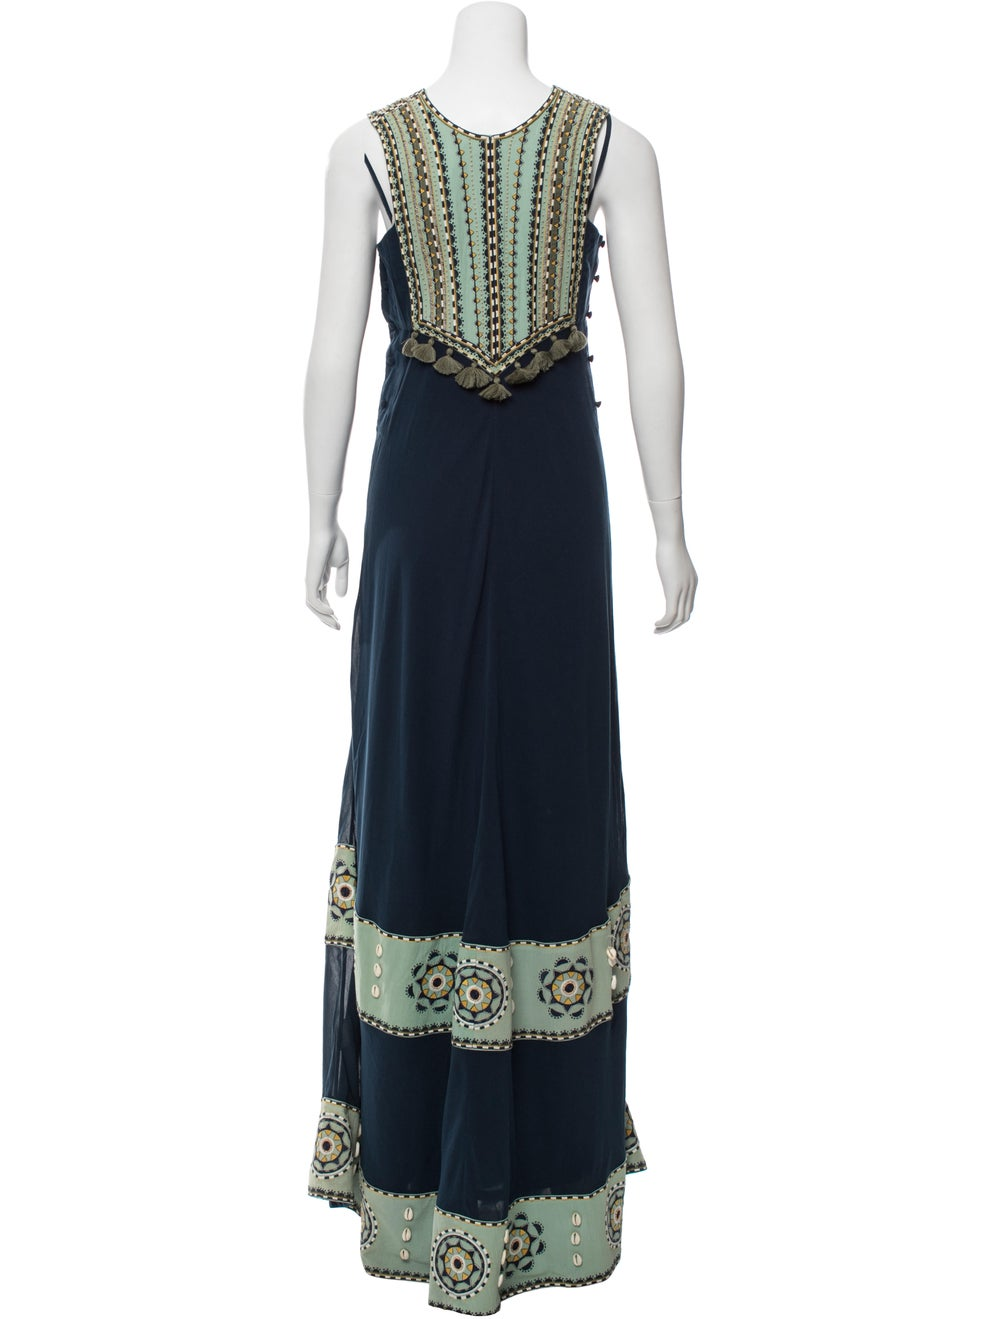 Talitha Poplin Embroidered Dress w/ Tags Blue - image 3